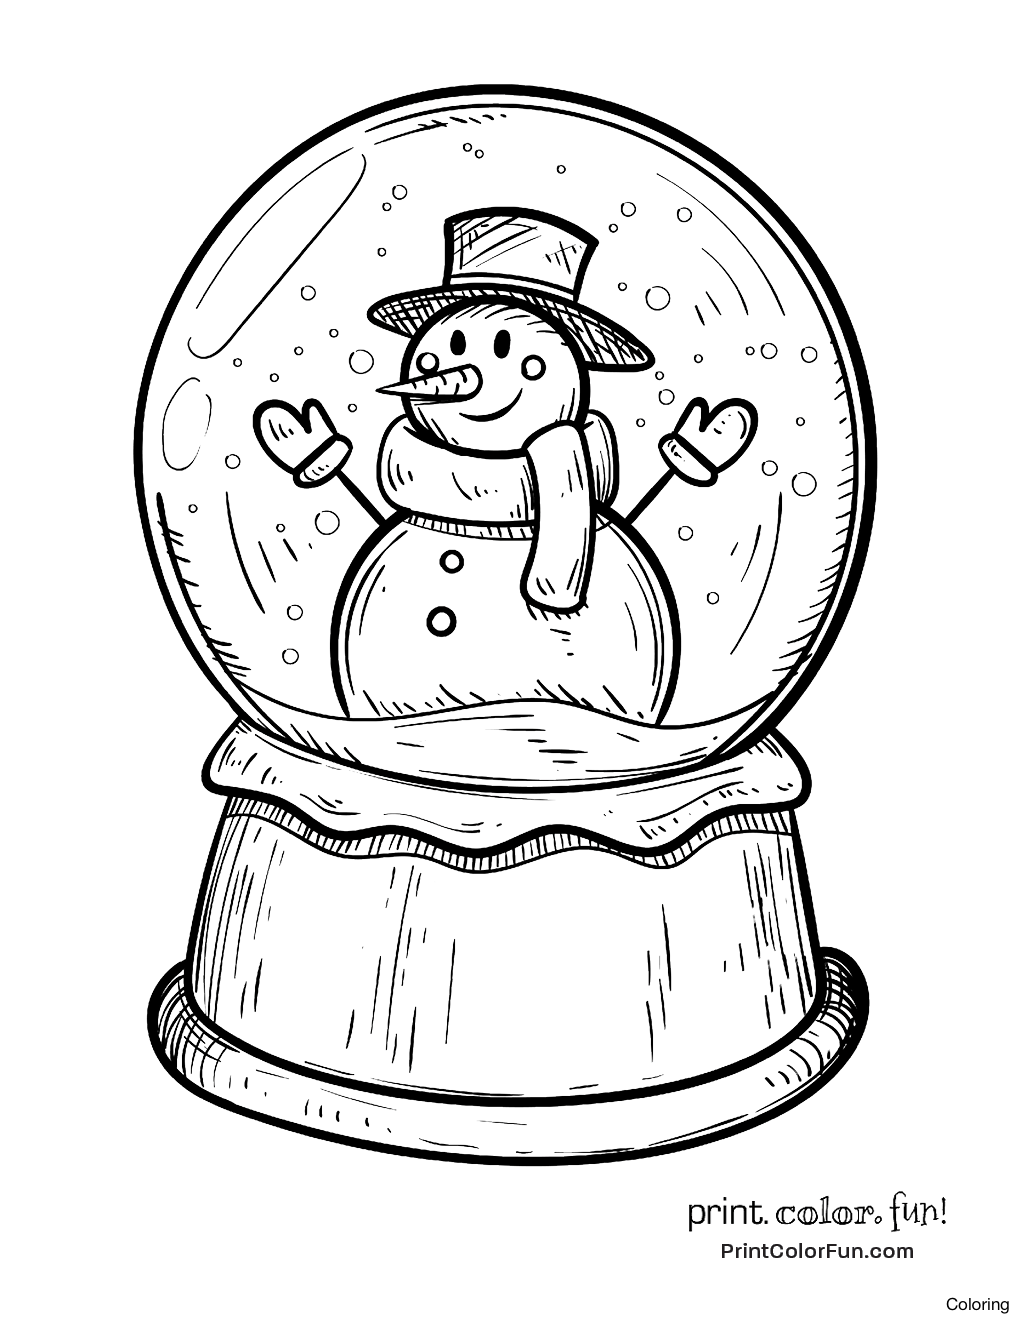 1020x1320 Free Globe Coloring Pages 81 On Disney With Page 1f Snow Theater